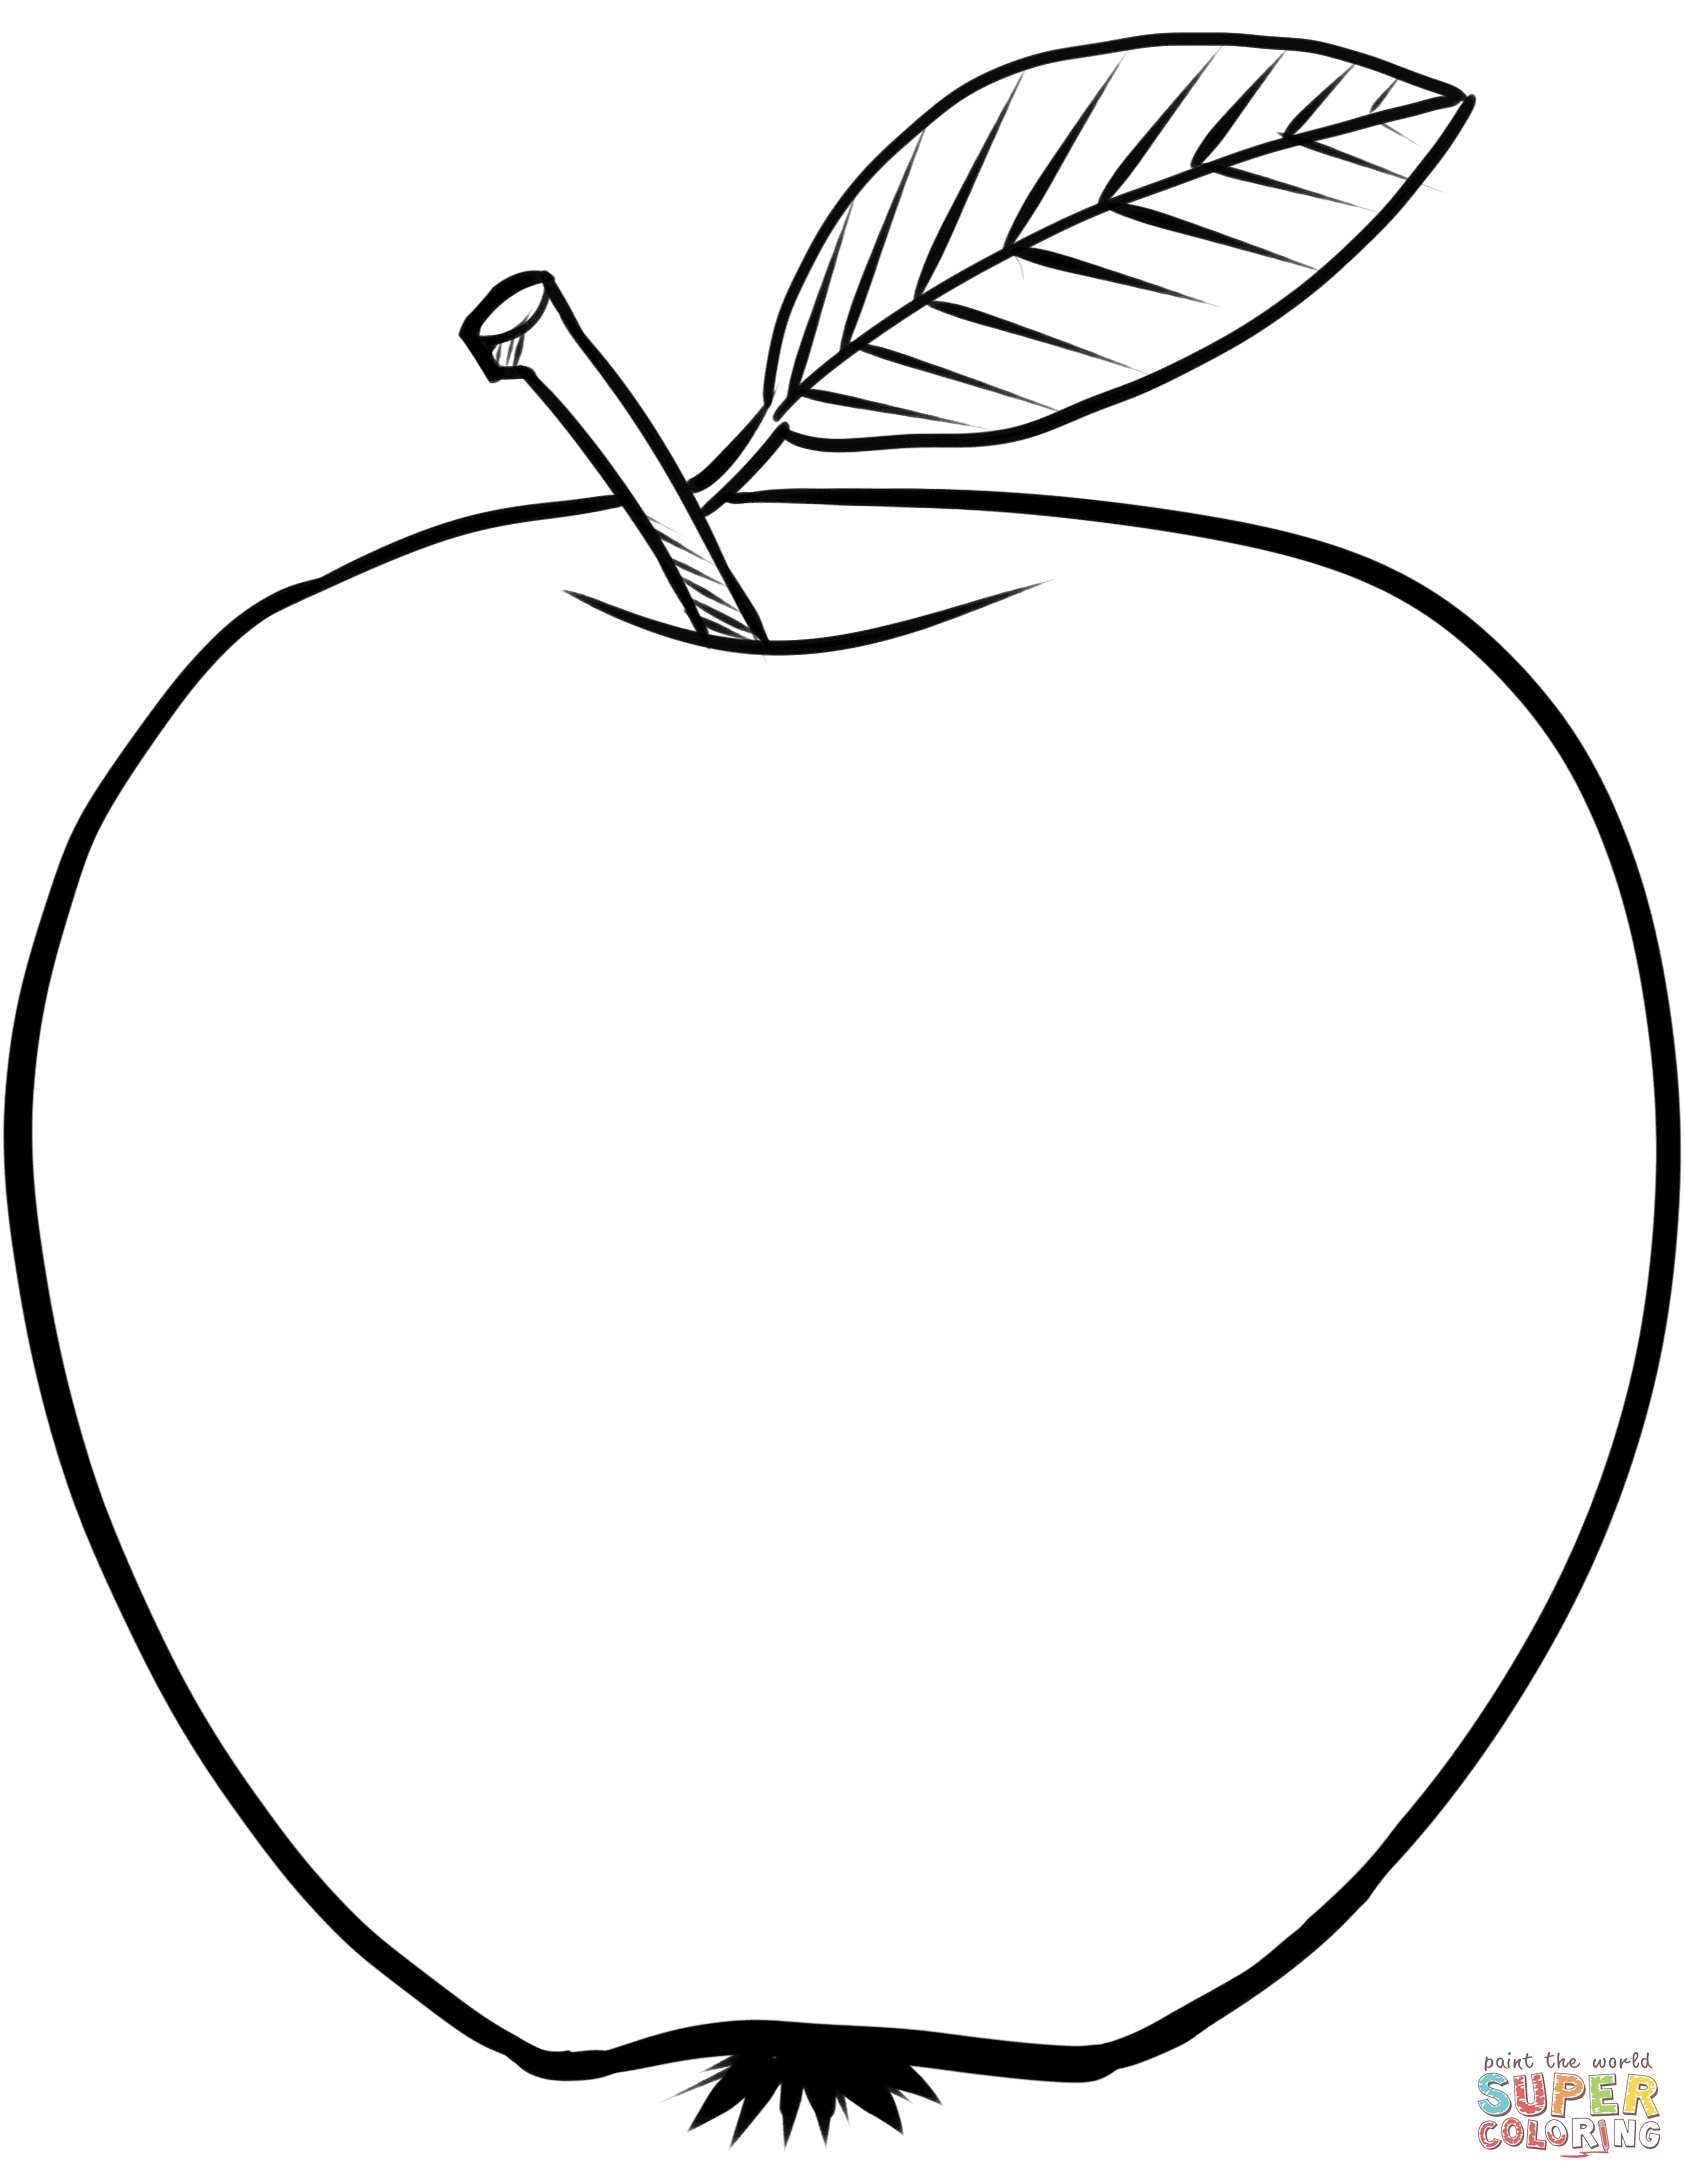 coloring image of an apple apple with leaf coloring page coloring sky coloring image apple of an